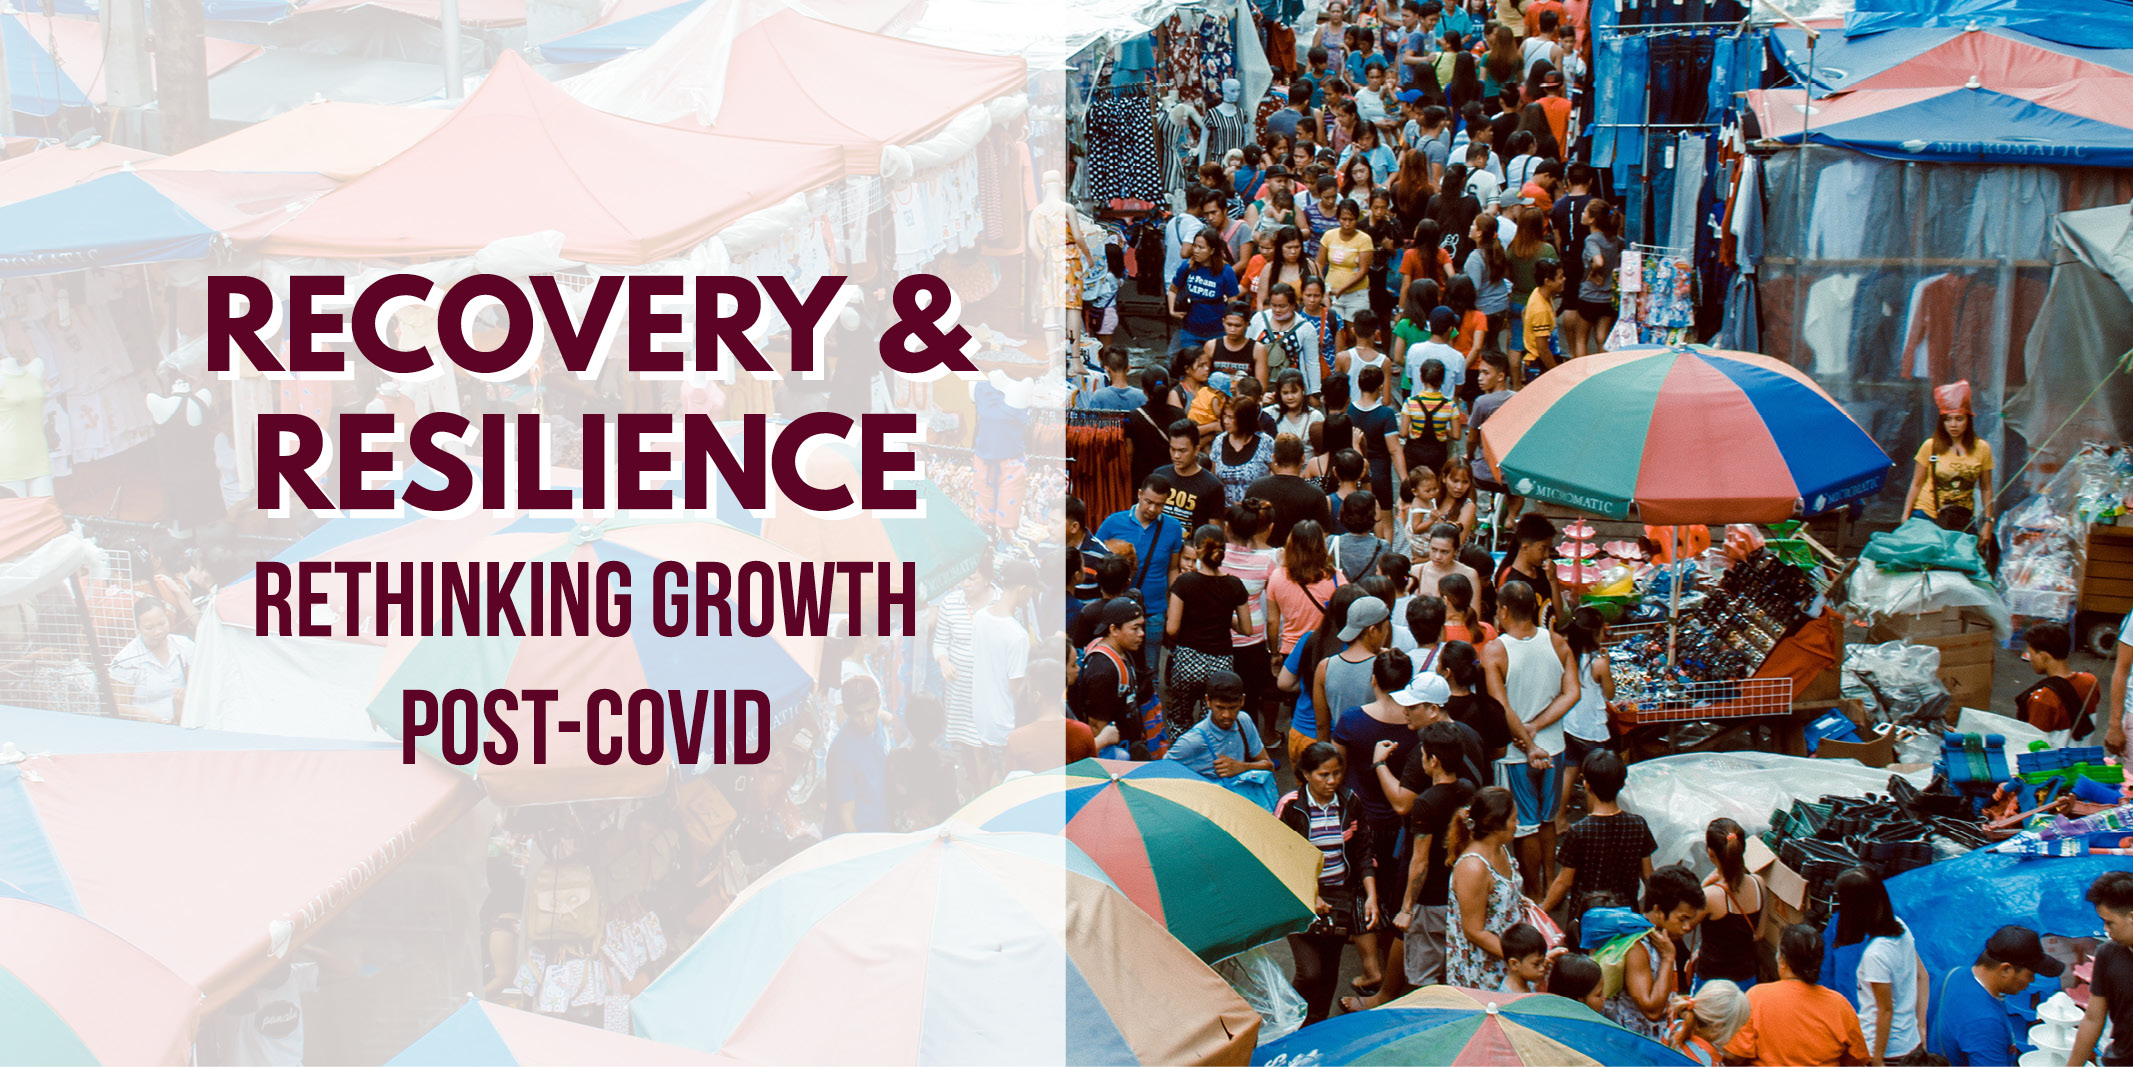 Recovery & Resilience: Rethinking Growth Post-COVID